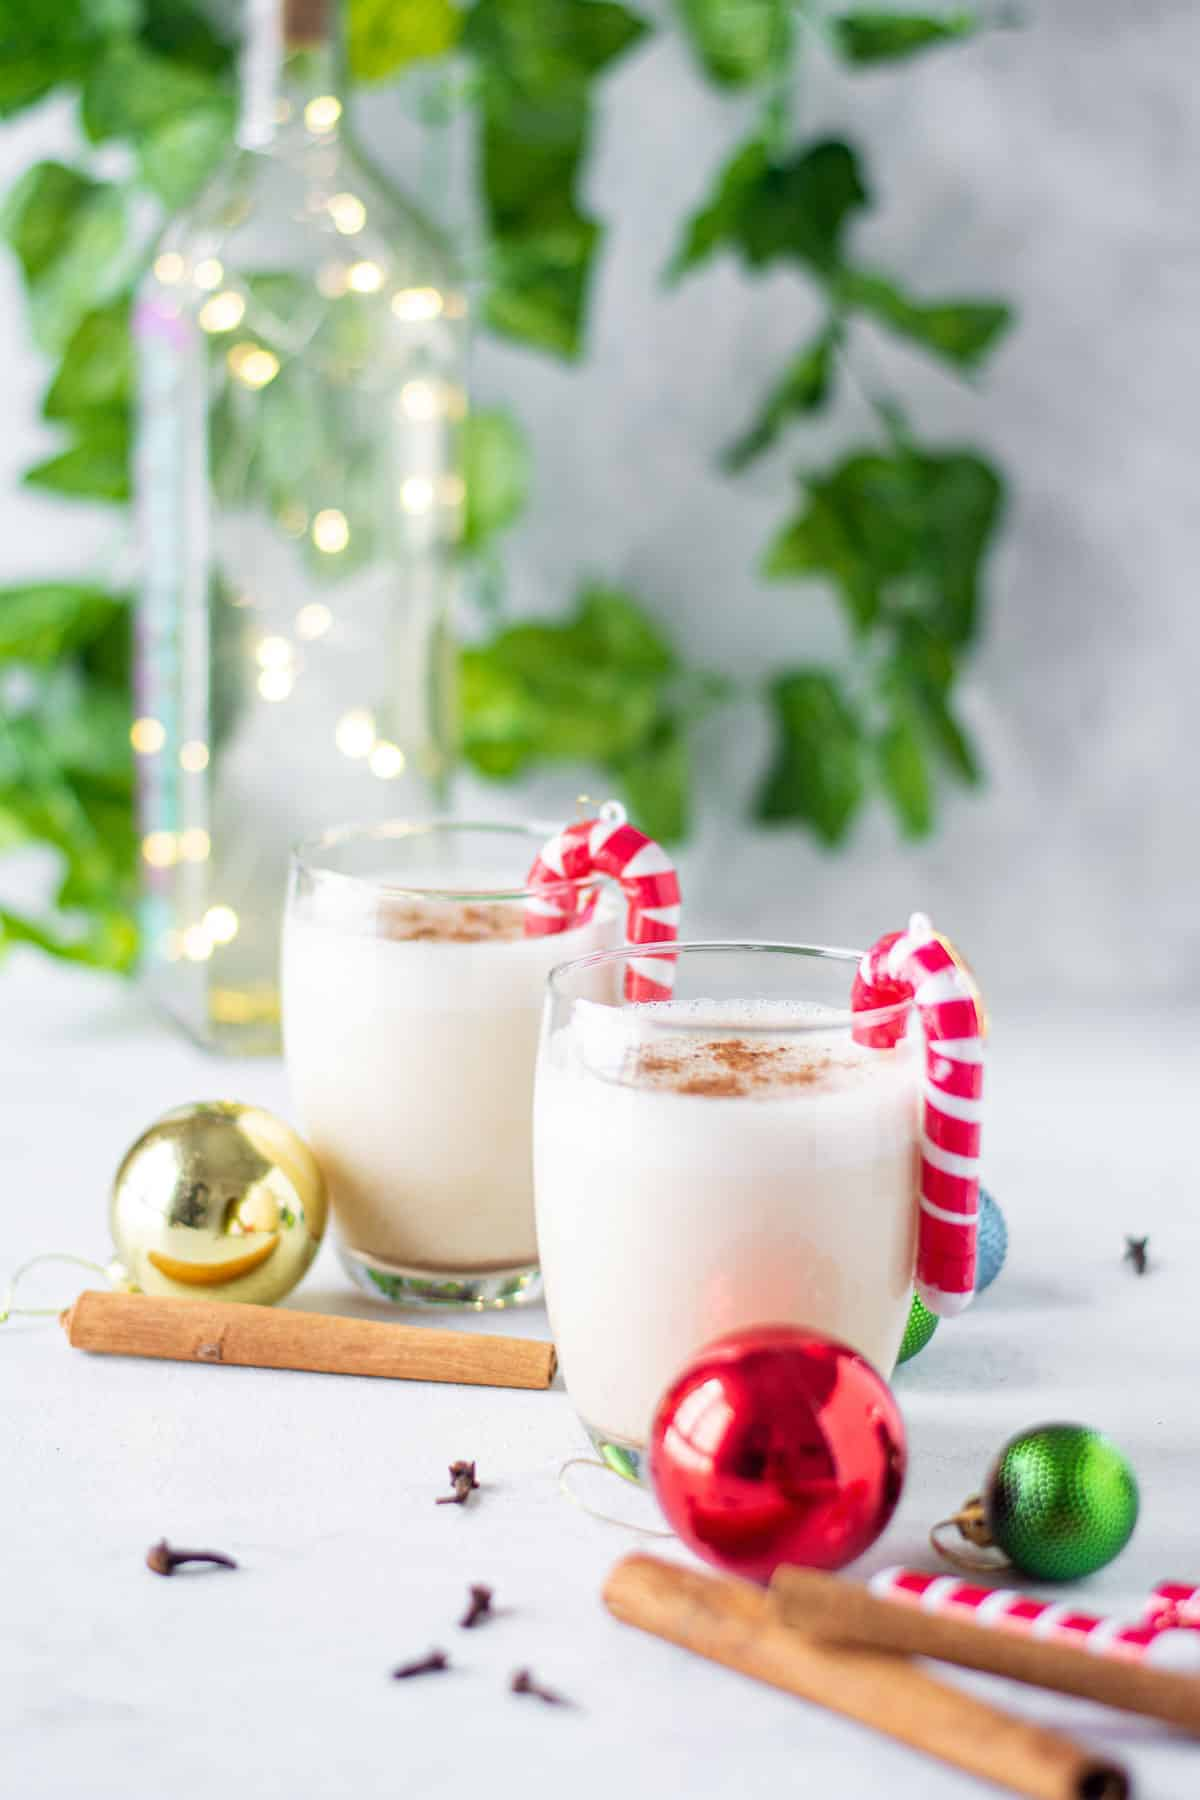 Two cocktails made with egg and milk in a festive holiday scene.